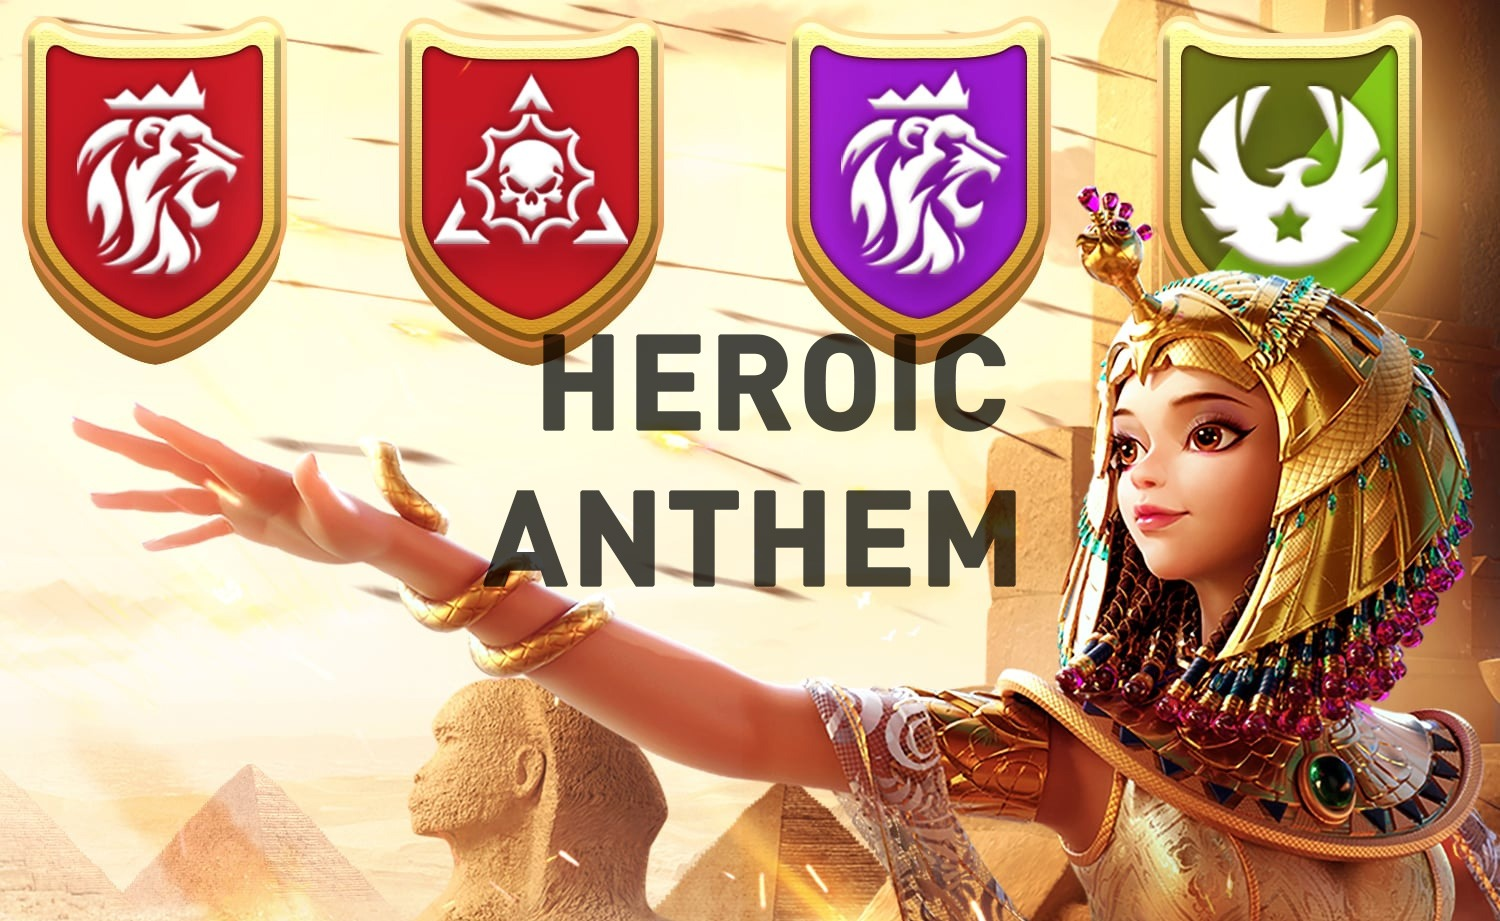 heroic anthem Rise of Kingdoms